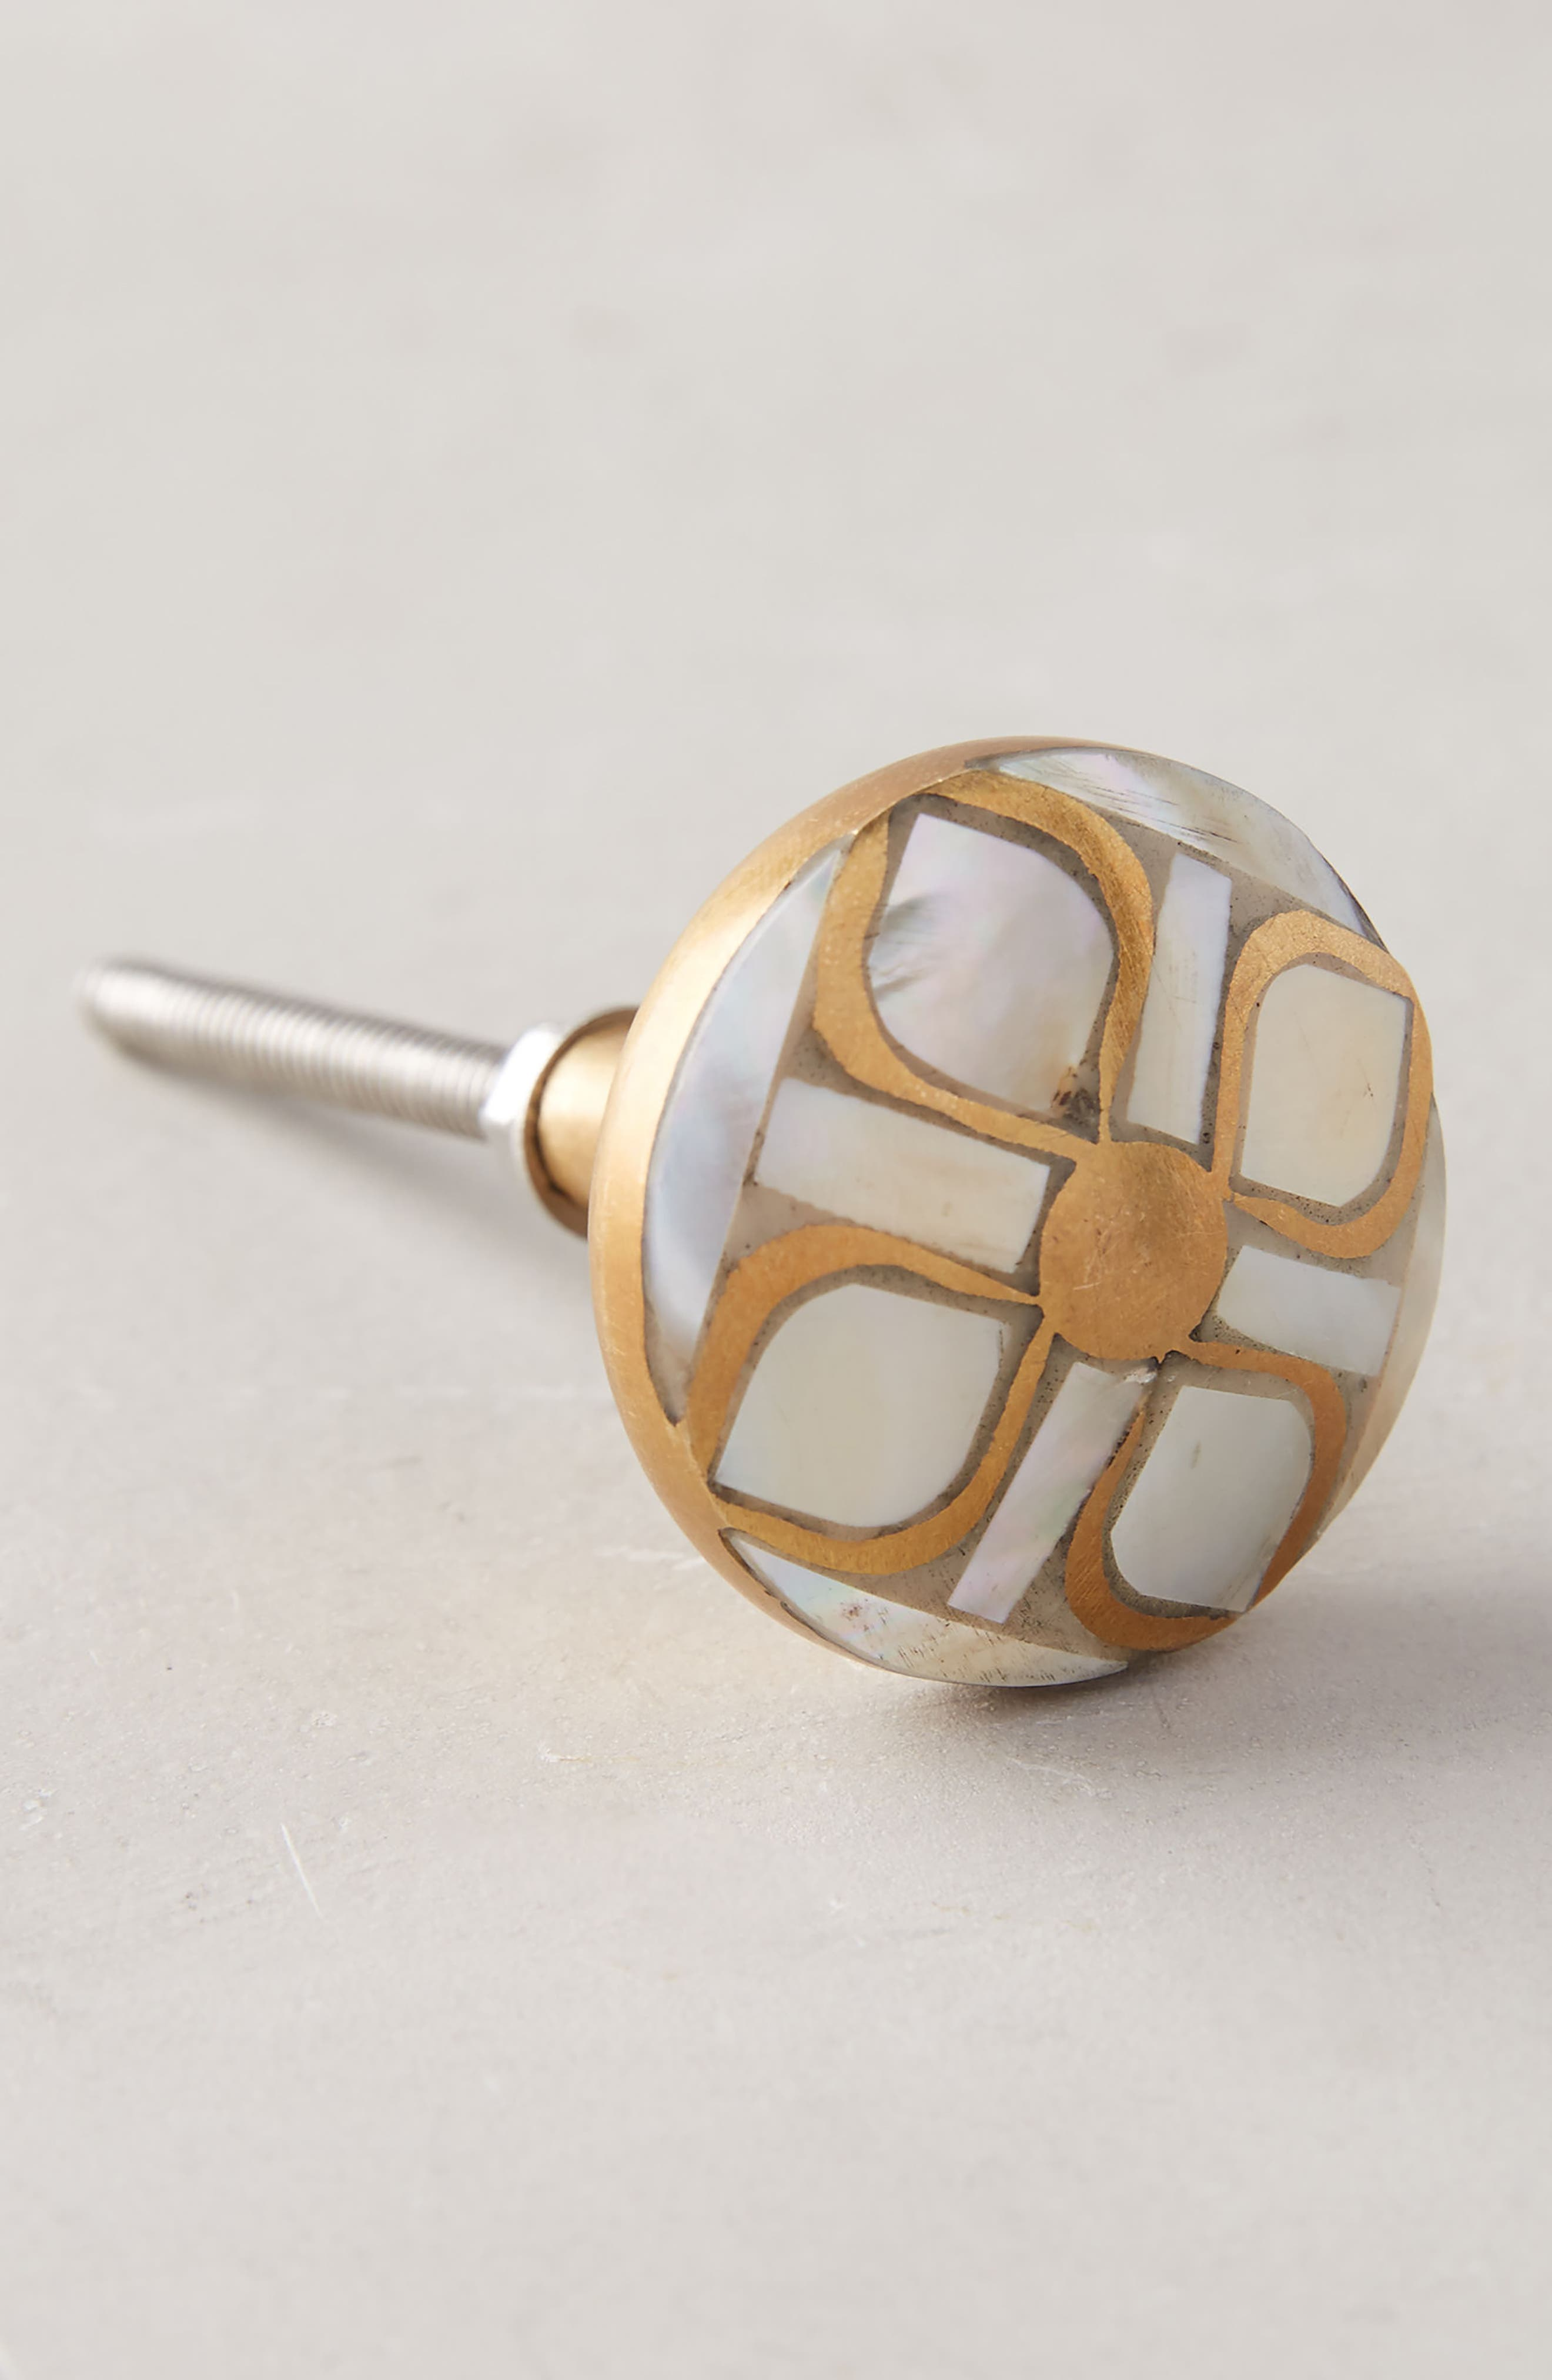 Serpentine Mother of Pearl Knob,                             Alternate thumbnail 2, color,                             Neutral